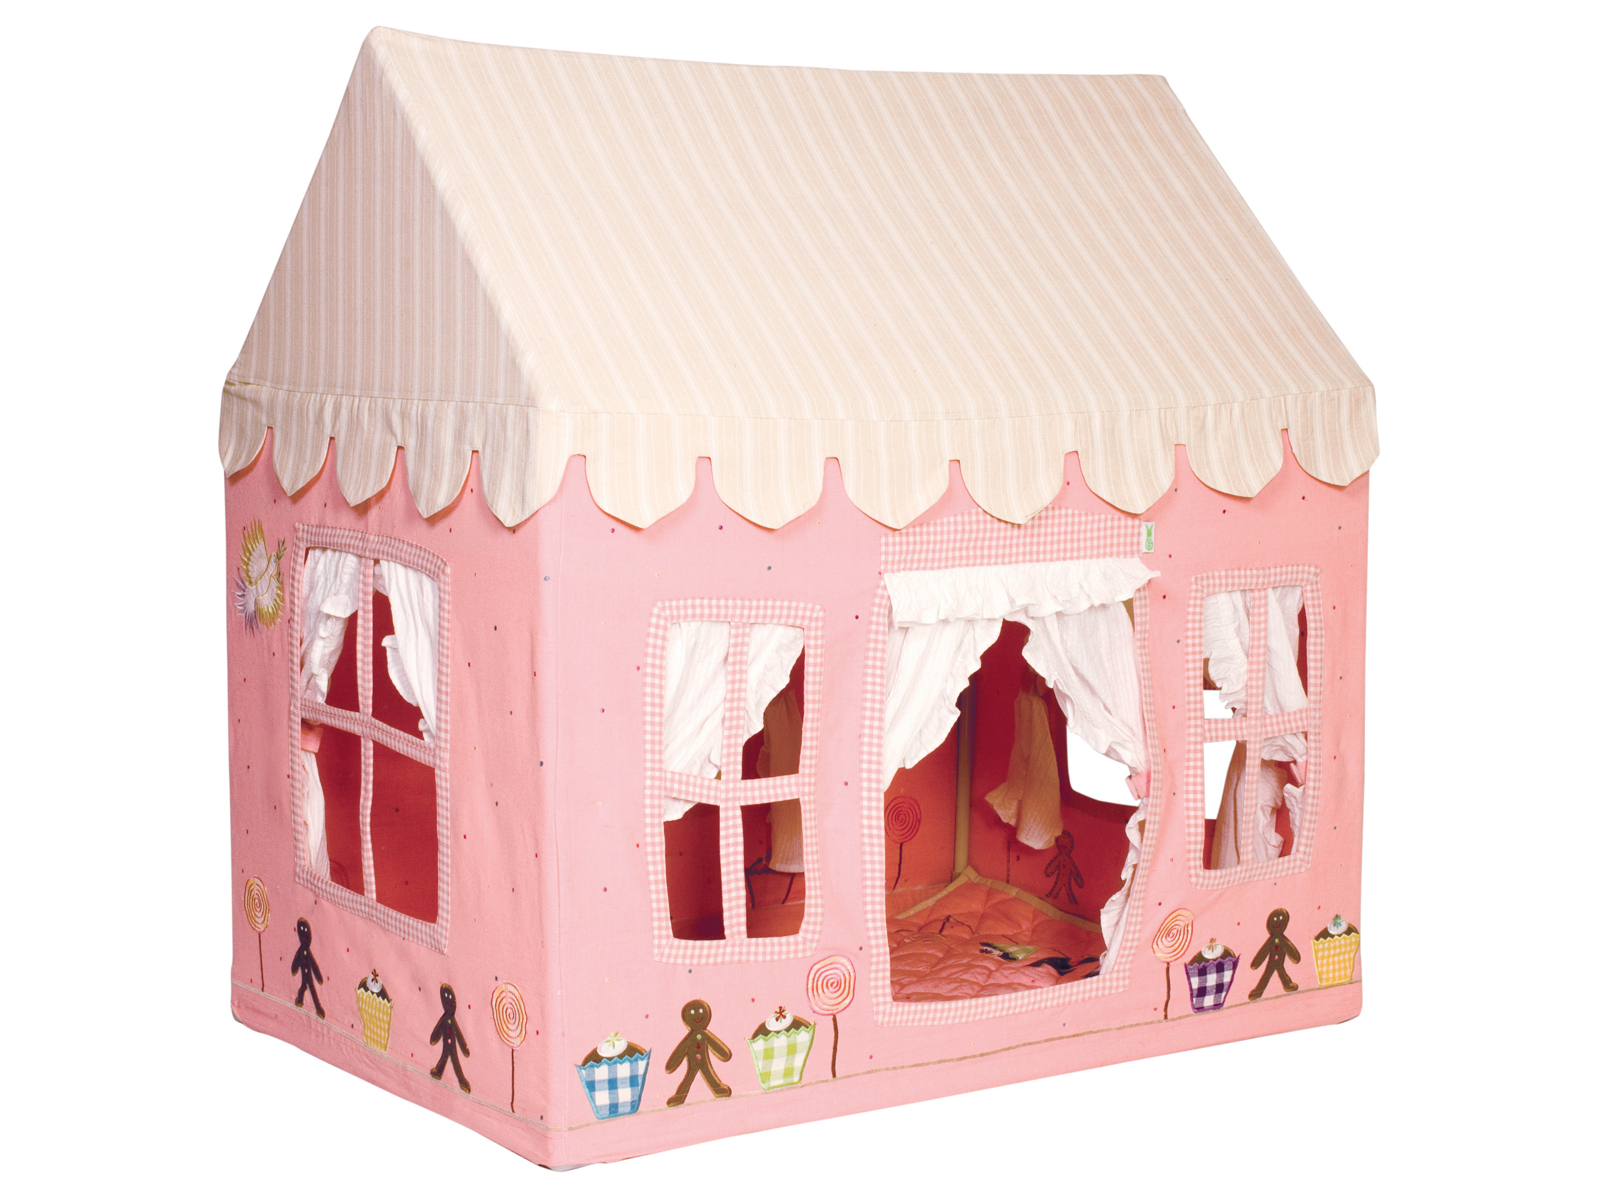 Win Green Handmade Cotton Gingerbread Playhouse - Playhouse of Dreams  - 1